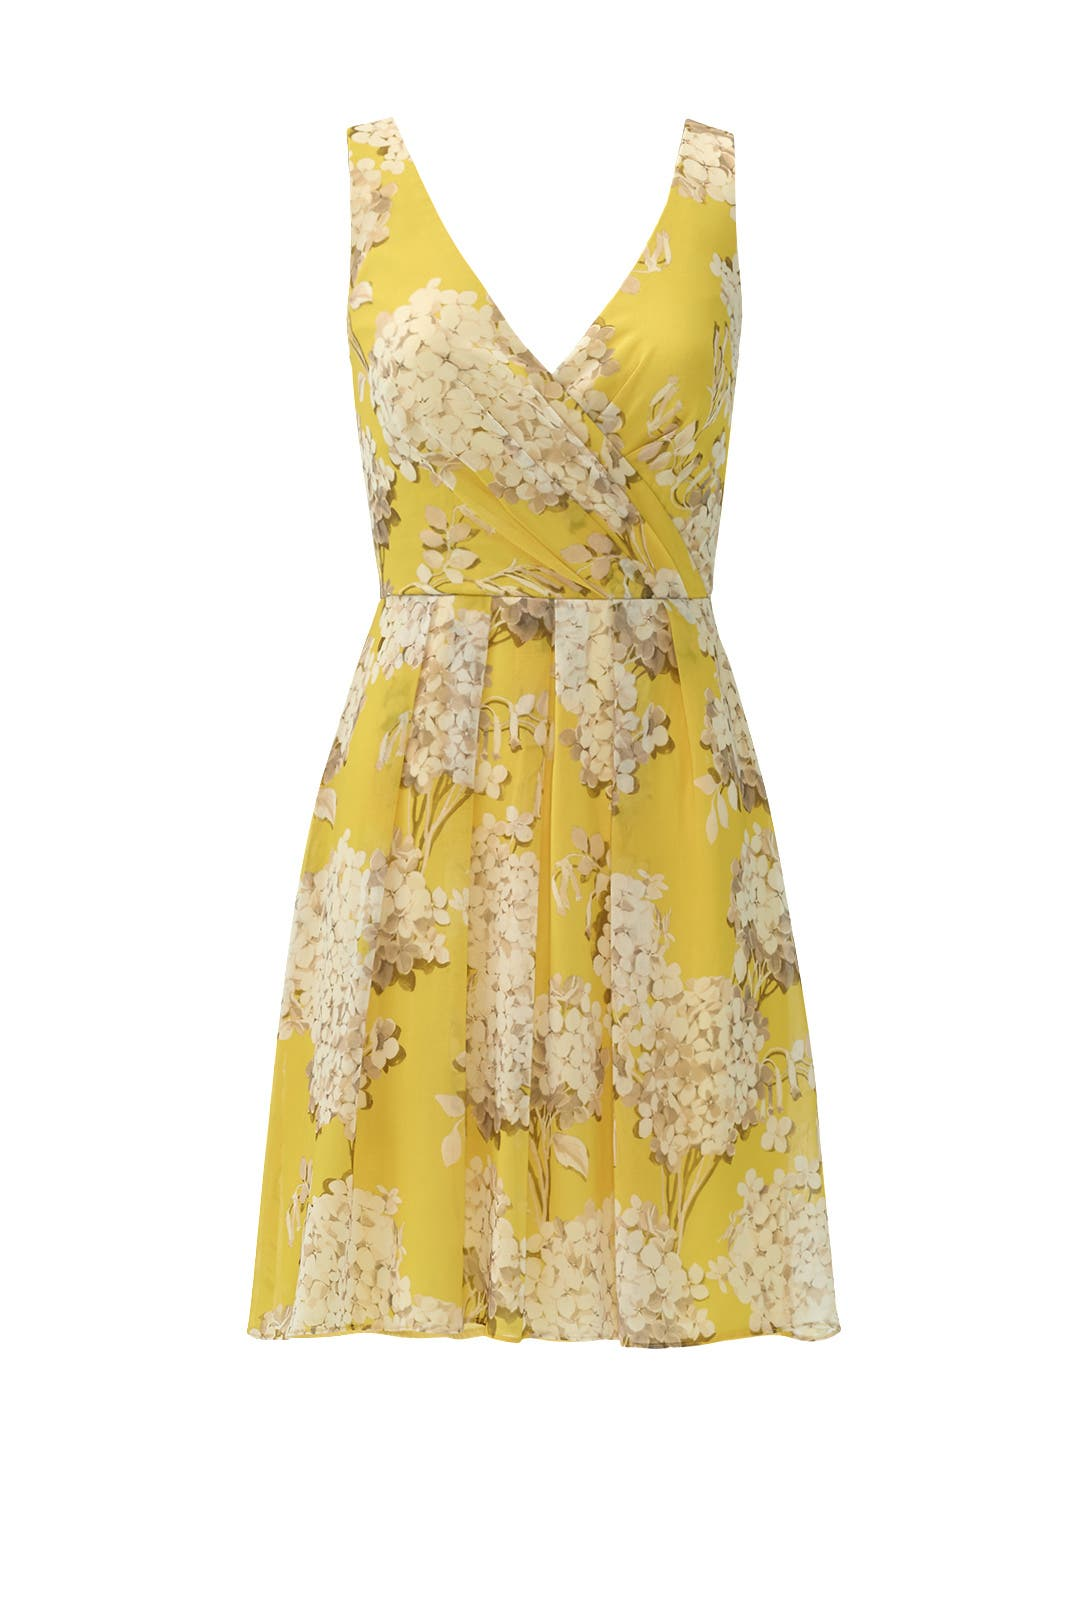 Canary Hydrangea Dress by Trina Turk for $30 - $60 | Rent the Runway